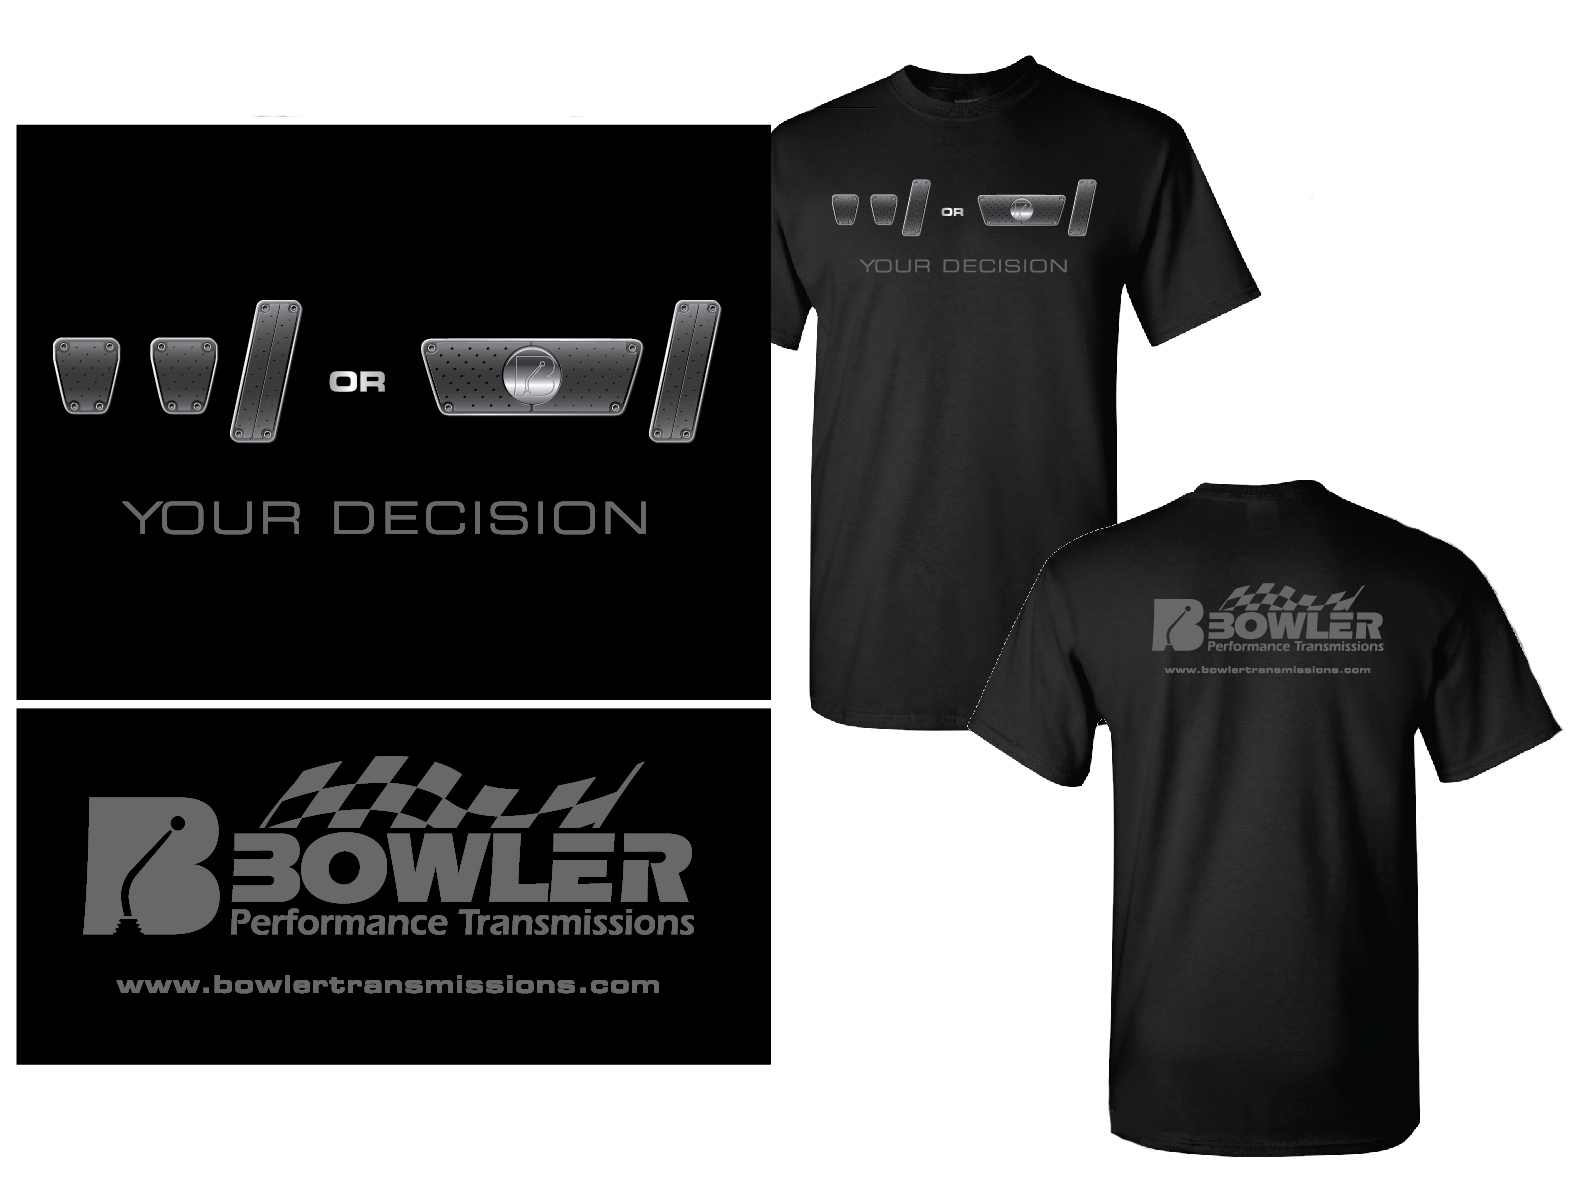 Your Decision T-Shirt